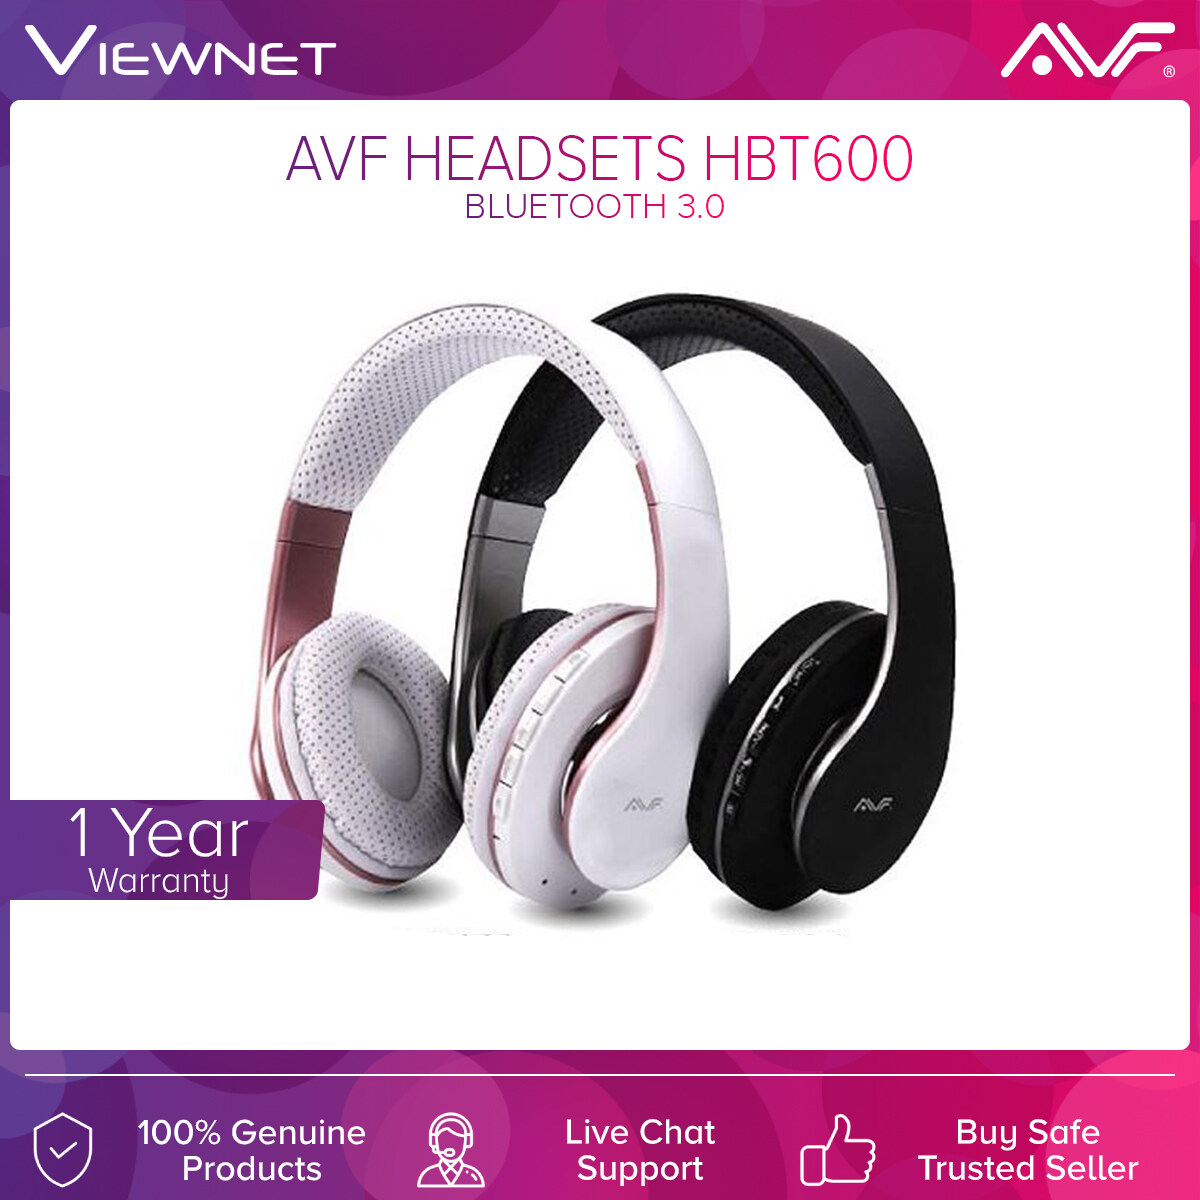 AVF Wireless Headsets HBT600 with Bluetooth V3.0, AUX-In Mode, TF Card Mode, FM Radio Mode, 8 Hours Battery Life